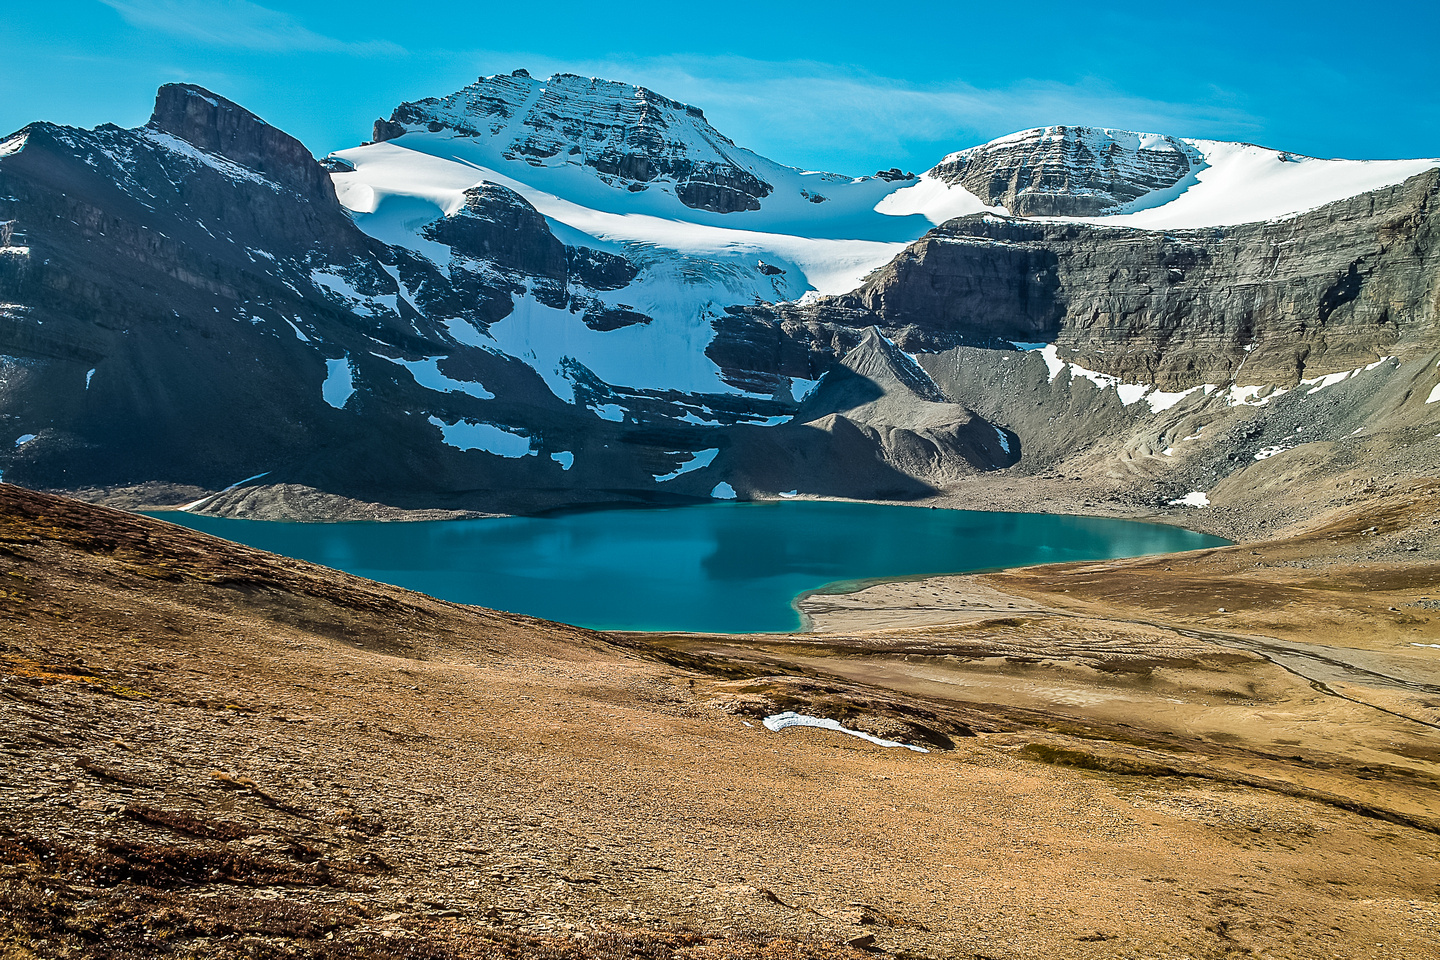 Stunning view of Caldron Lake with Peyto Peak rising above it.